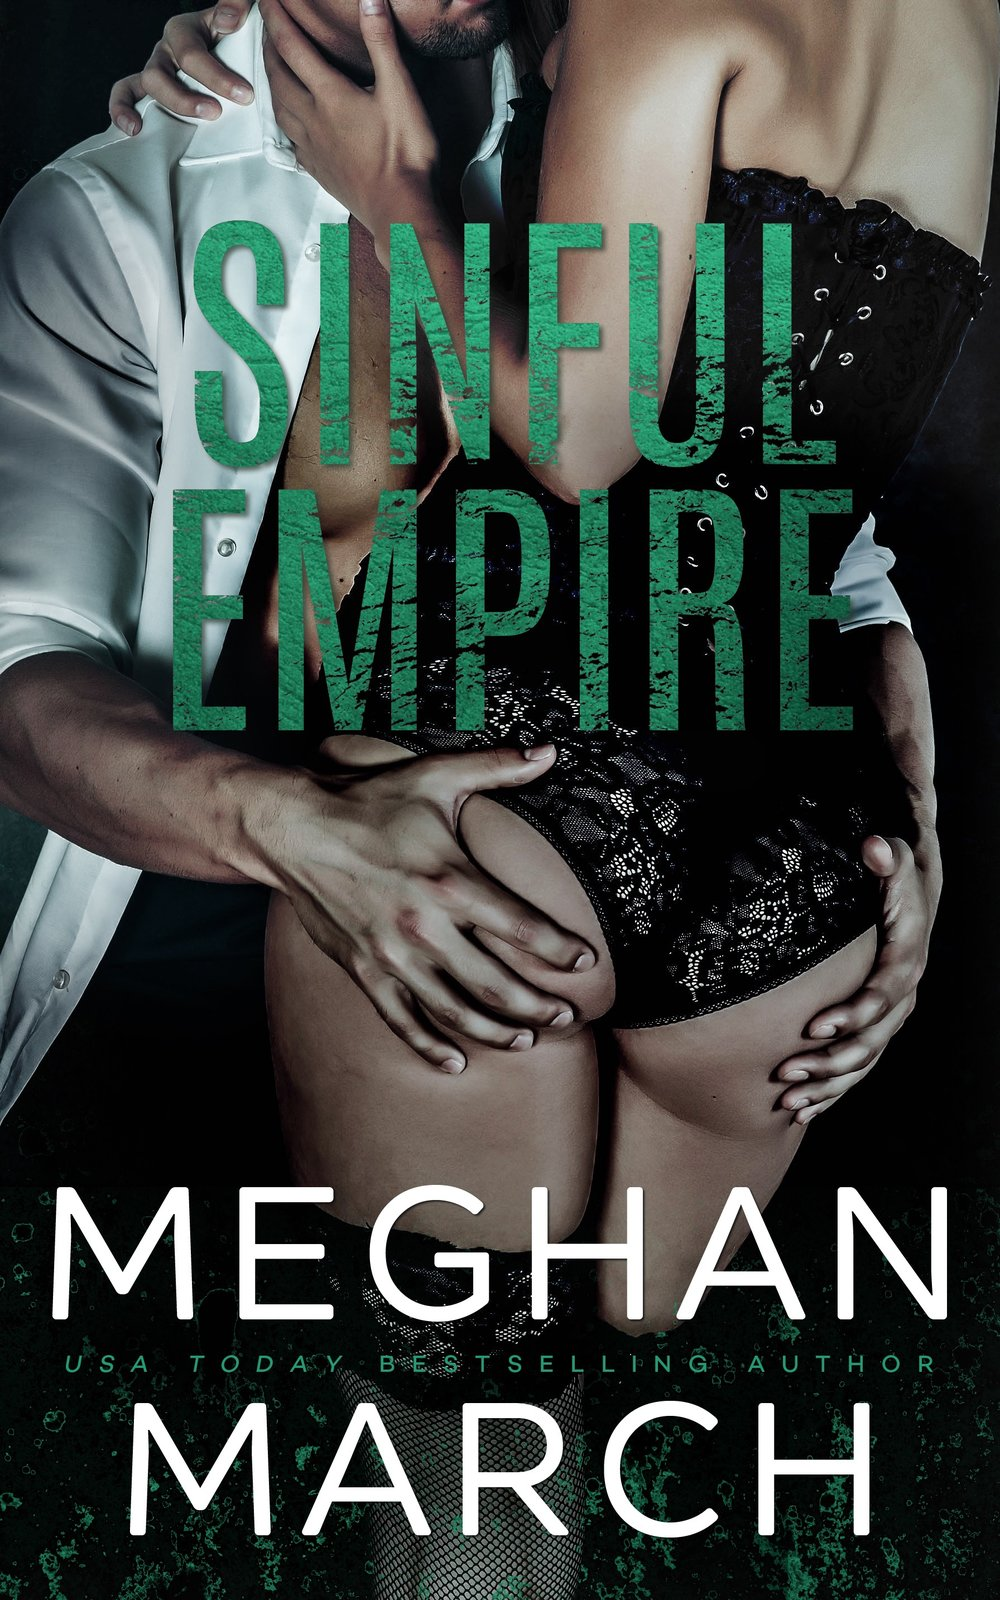 Sinful Empire ~ Release's December 19, 2017 ~ Mount Trilogy Book 3    The Mount Trilogy concludes with Sinful Empire!     What's mine, I keep, and that includes Keira Kilgore.    It's no longer enough to have her in my debt. No longer enough to own her body.    I want something more.    She can try to resist, but I'll never give her up.    Nothing will keep us apart.    Not her. Not my enemies. No one.    Her debt will only be paid one way—with her heart.    Sinful Empire is the third and final book in the Mount Trilogy.     Goodreads   ⇢     Amazon US  ⇢    Amazon UK  ⇢    Amazon AU  ⇢      iBooks  ⇢    B&N  ⇢     Kobo